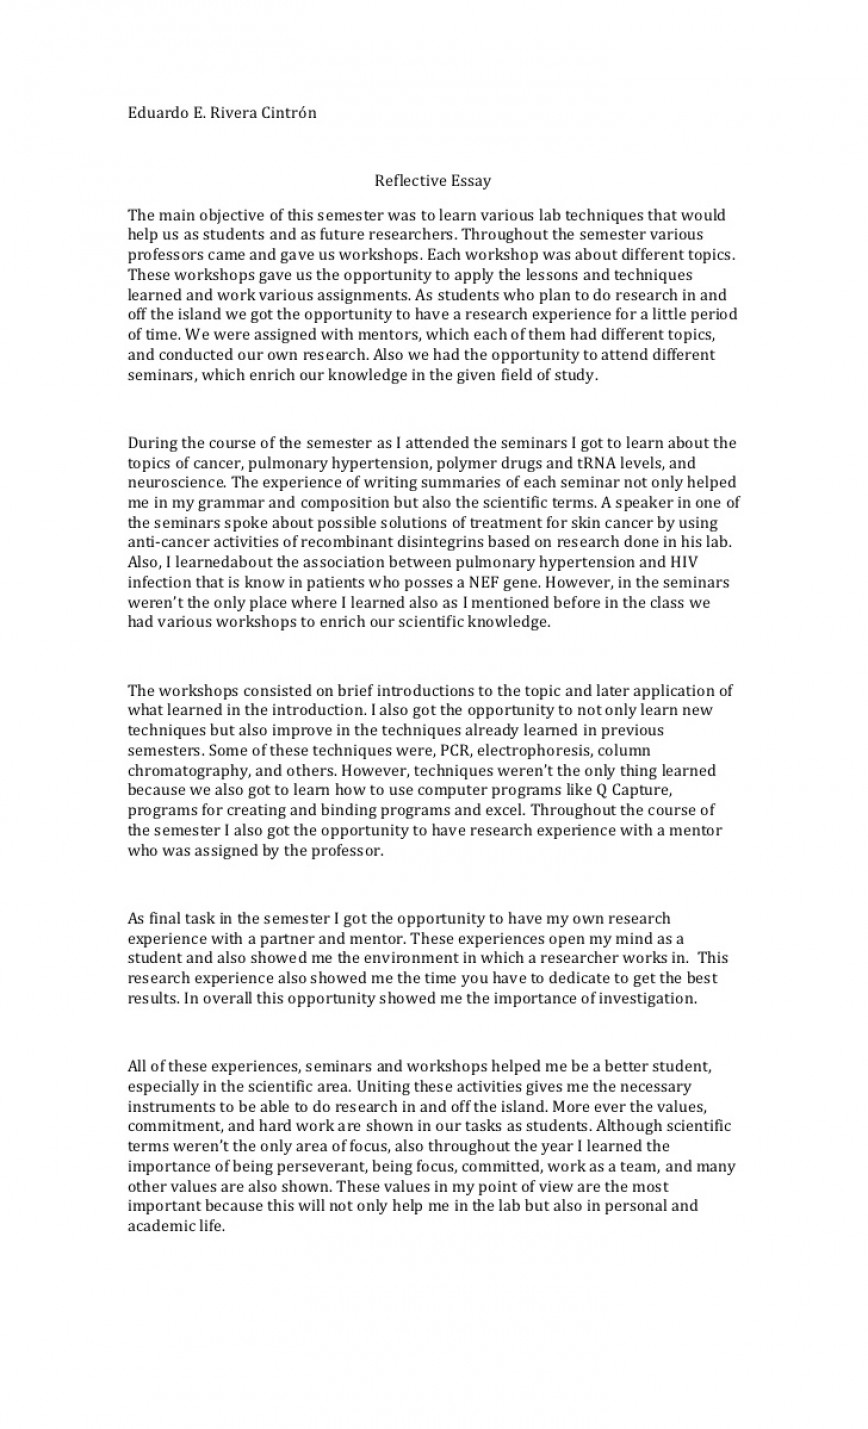 006 Reflective Essay Example Course Unforgettable Examples About Life Pdf High School Students Apa 868